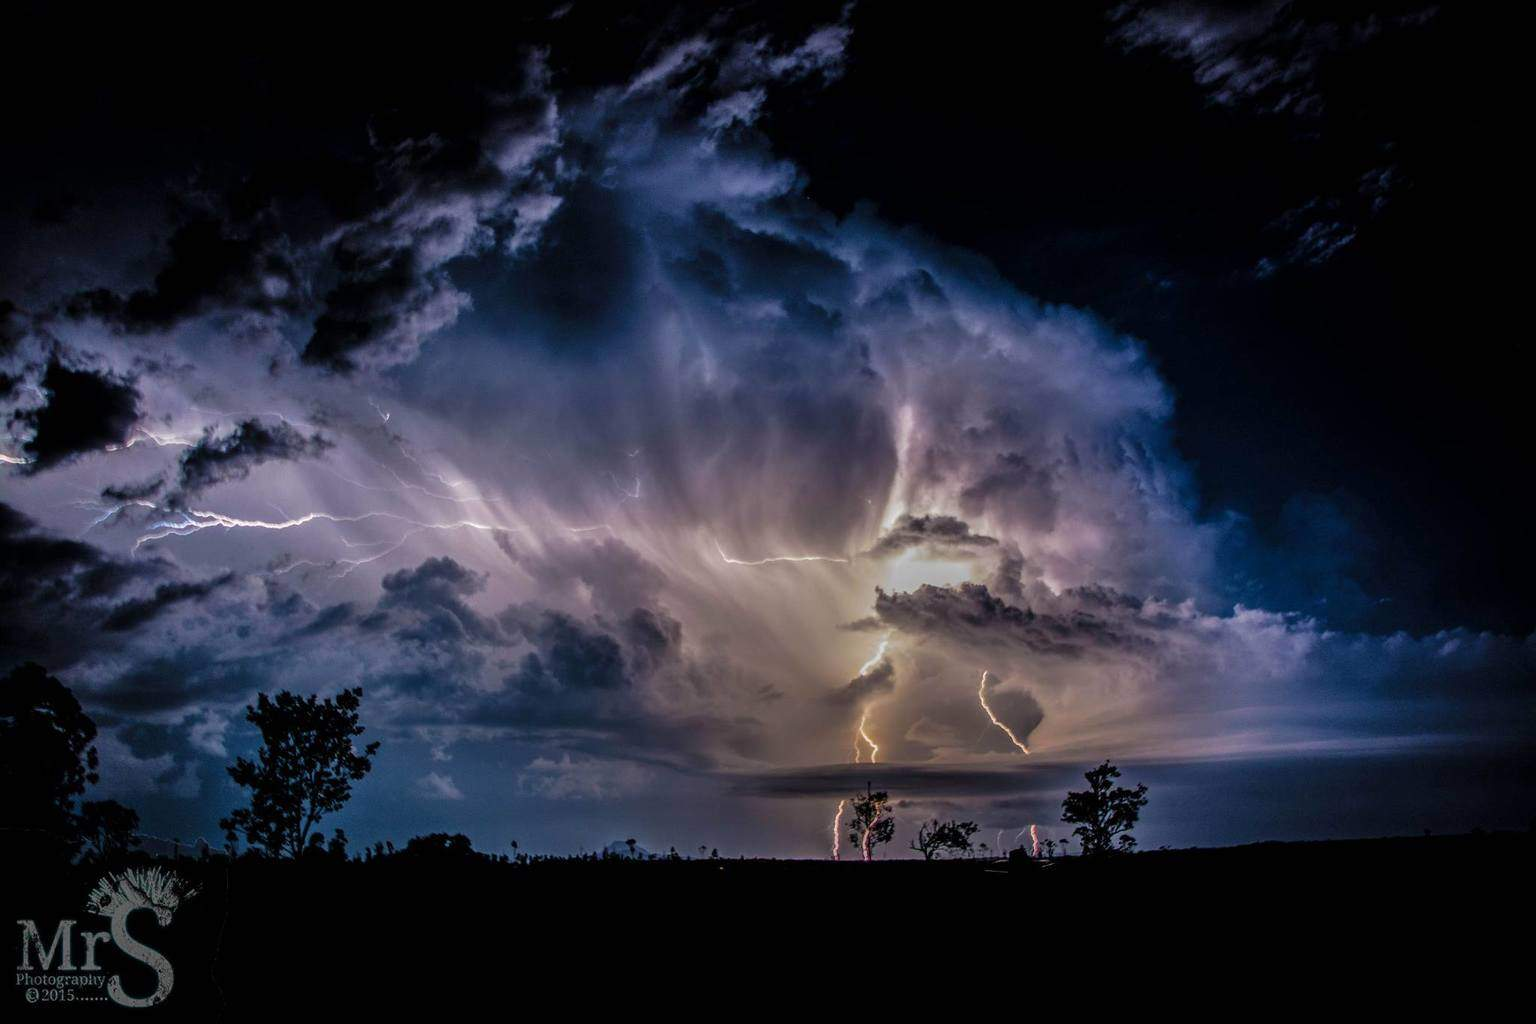 A massive storm last night over inland South East Queensland, Australia. The color's started to change as the smoke from spot fires were sucked into the cloud with the inflow's. Made for an amazing view. I must have captured 30 like this and hundreds of smaller. An awesome night.